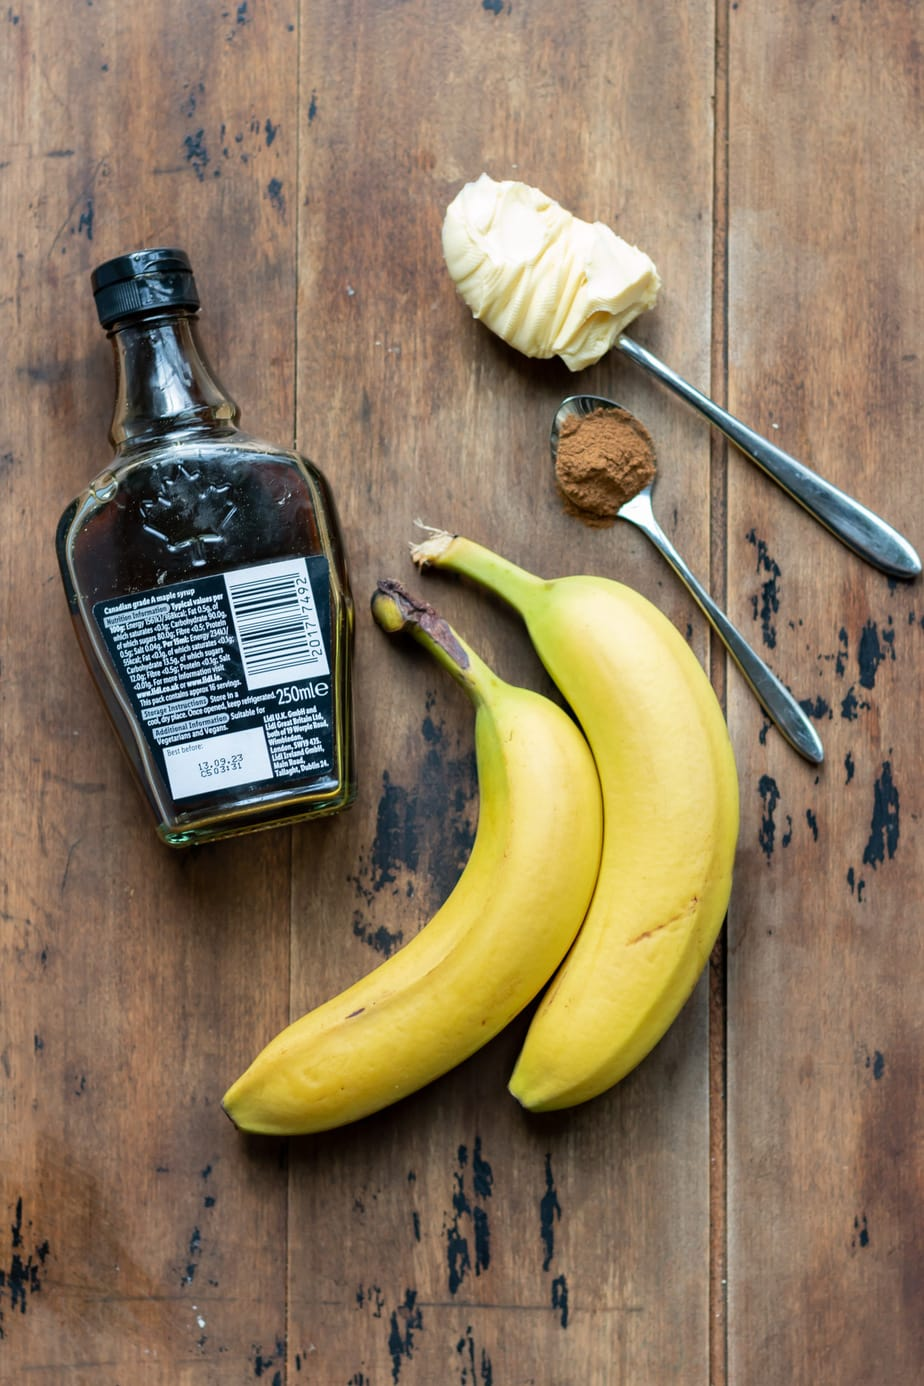 Maple syrup, bananas, cinnamon and butter on a table.